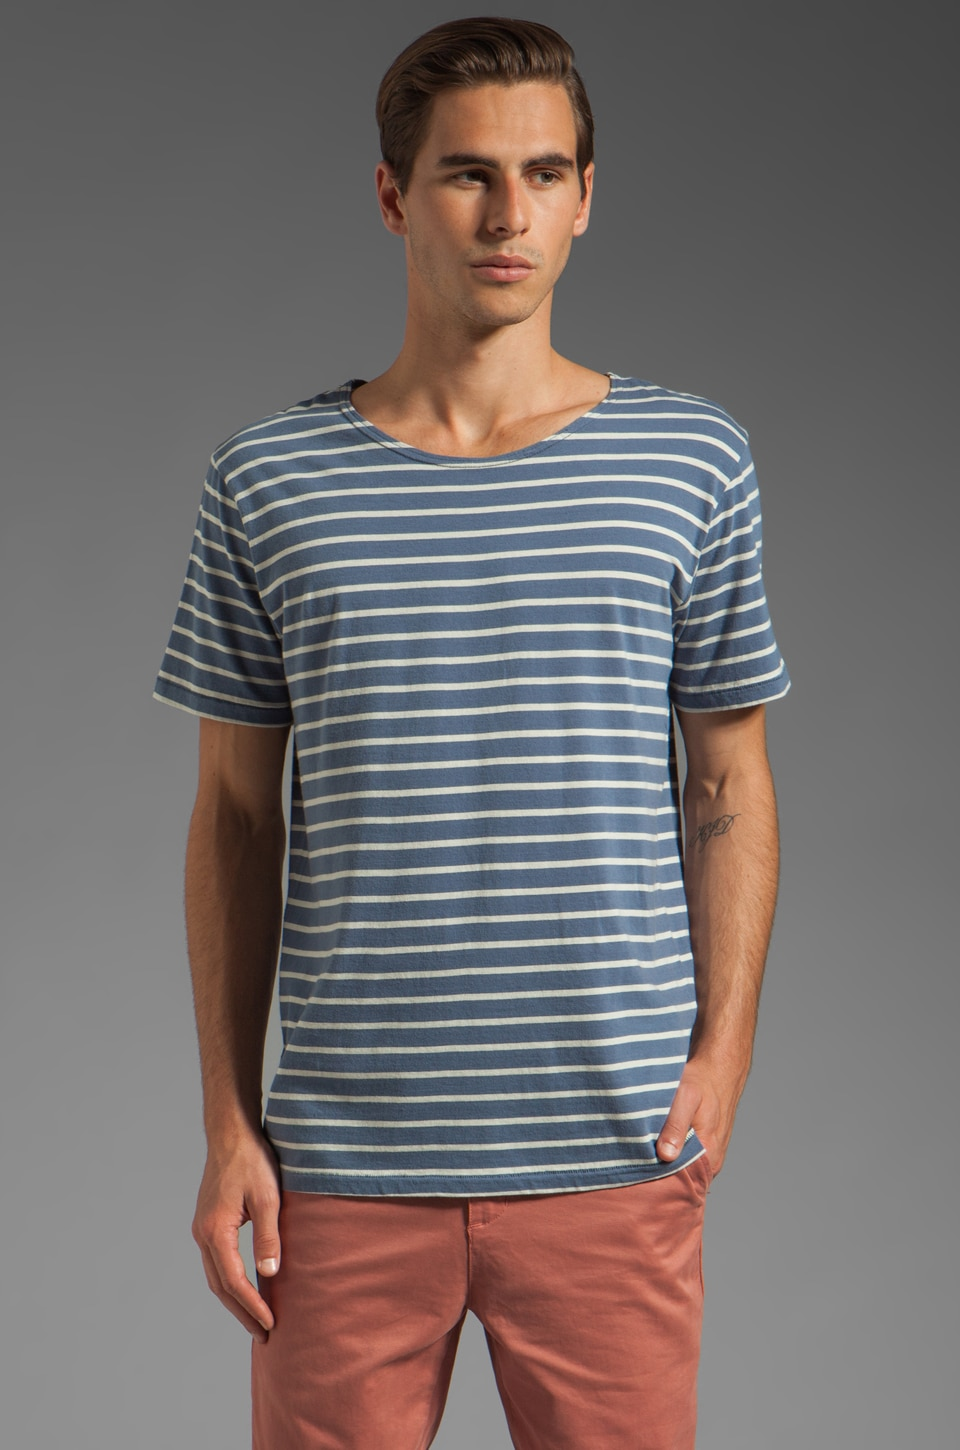 Vanishing Elephant Striped T-Shirt in Blue/Grey Stripe